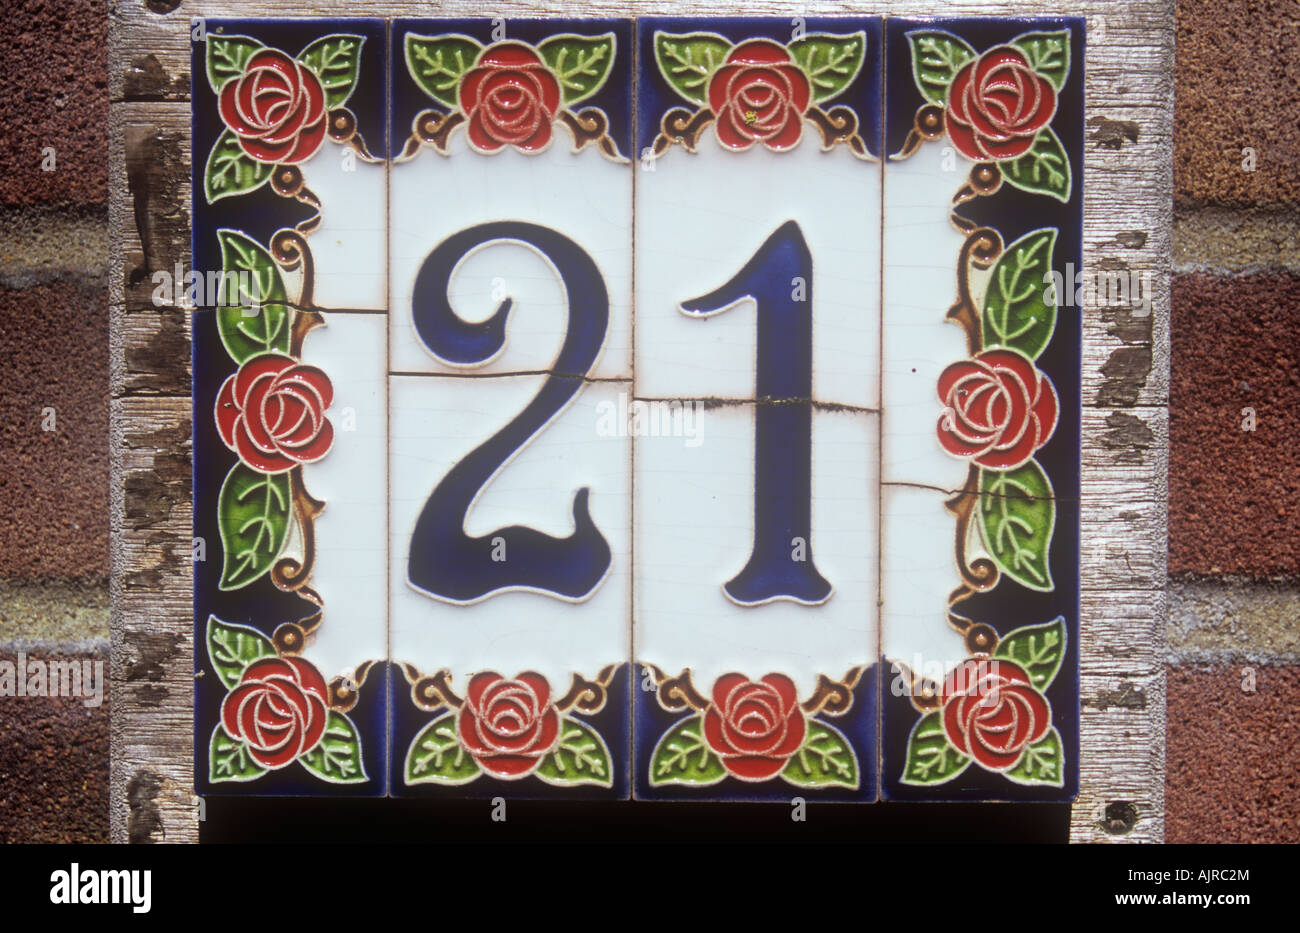 Ceramic tile house number stock photos ceramic tile house number close up of house number tiles stating 21 decorated in british arts and crafts movement style dailygadgetfo Images